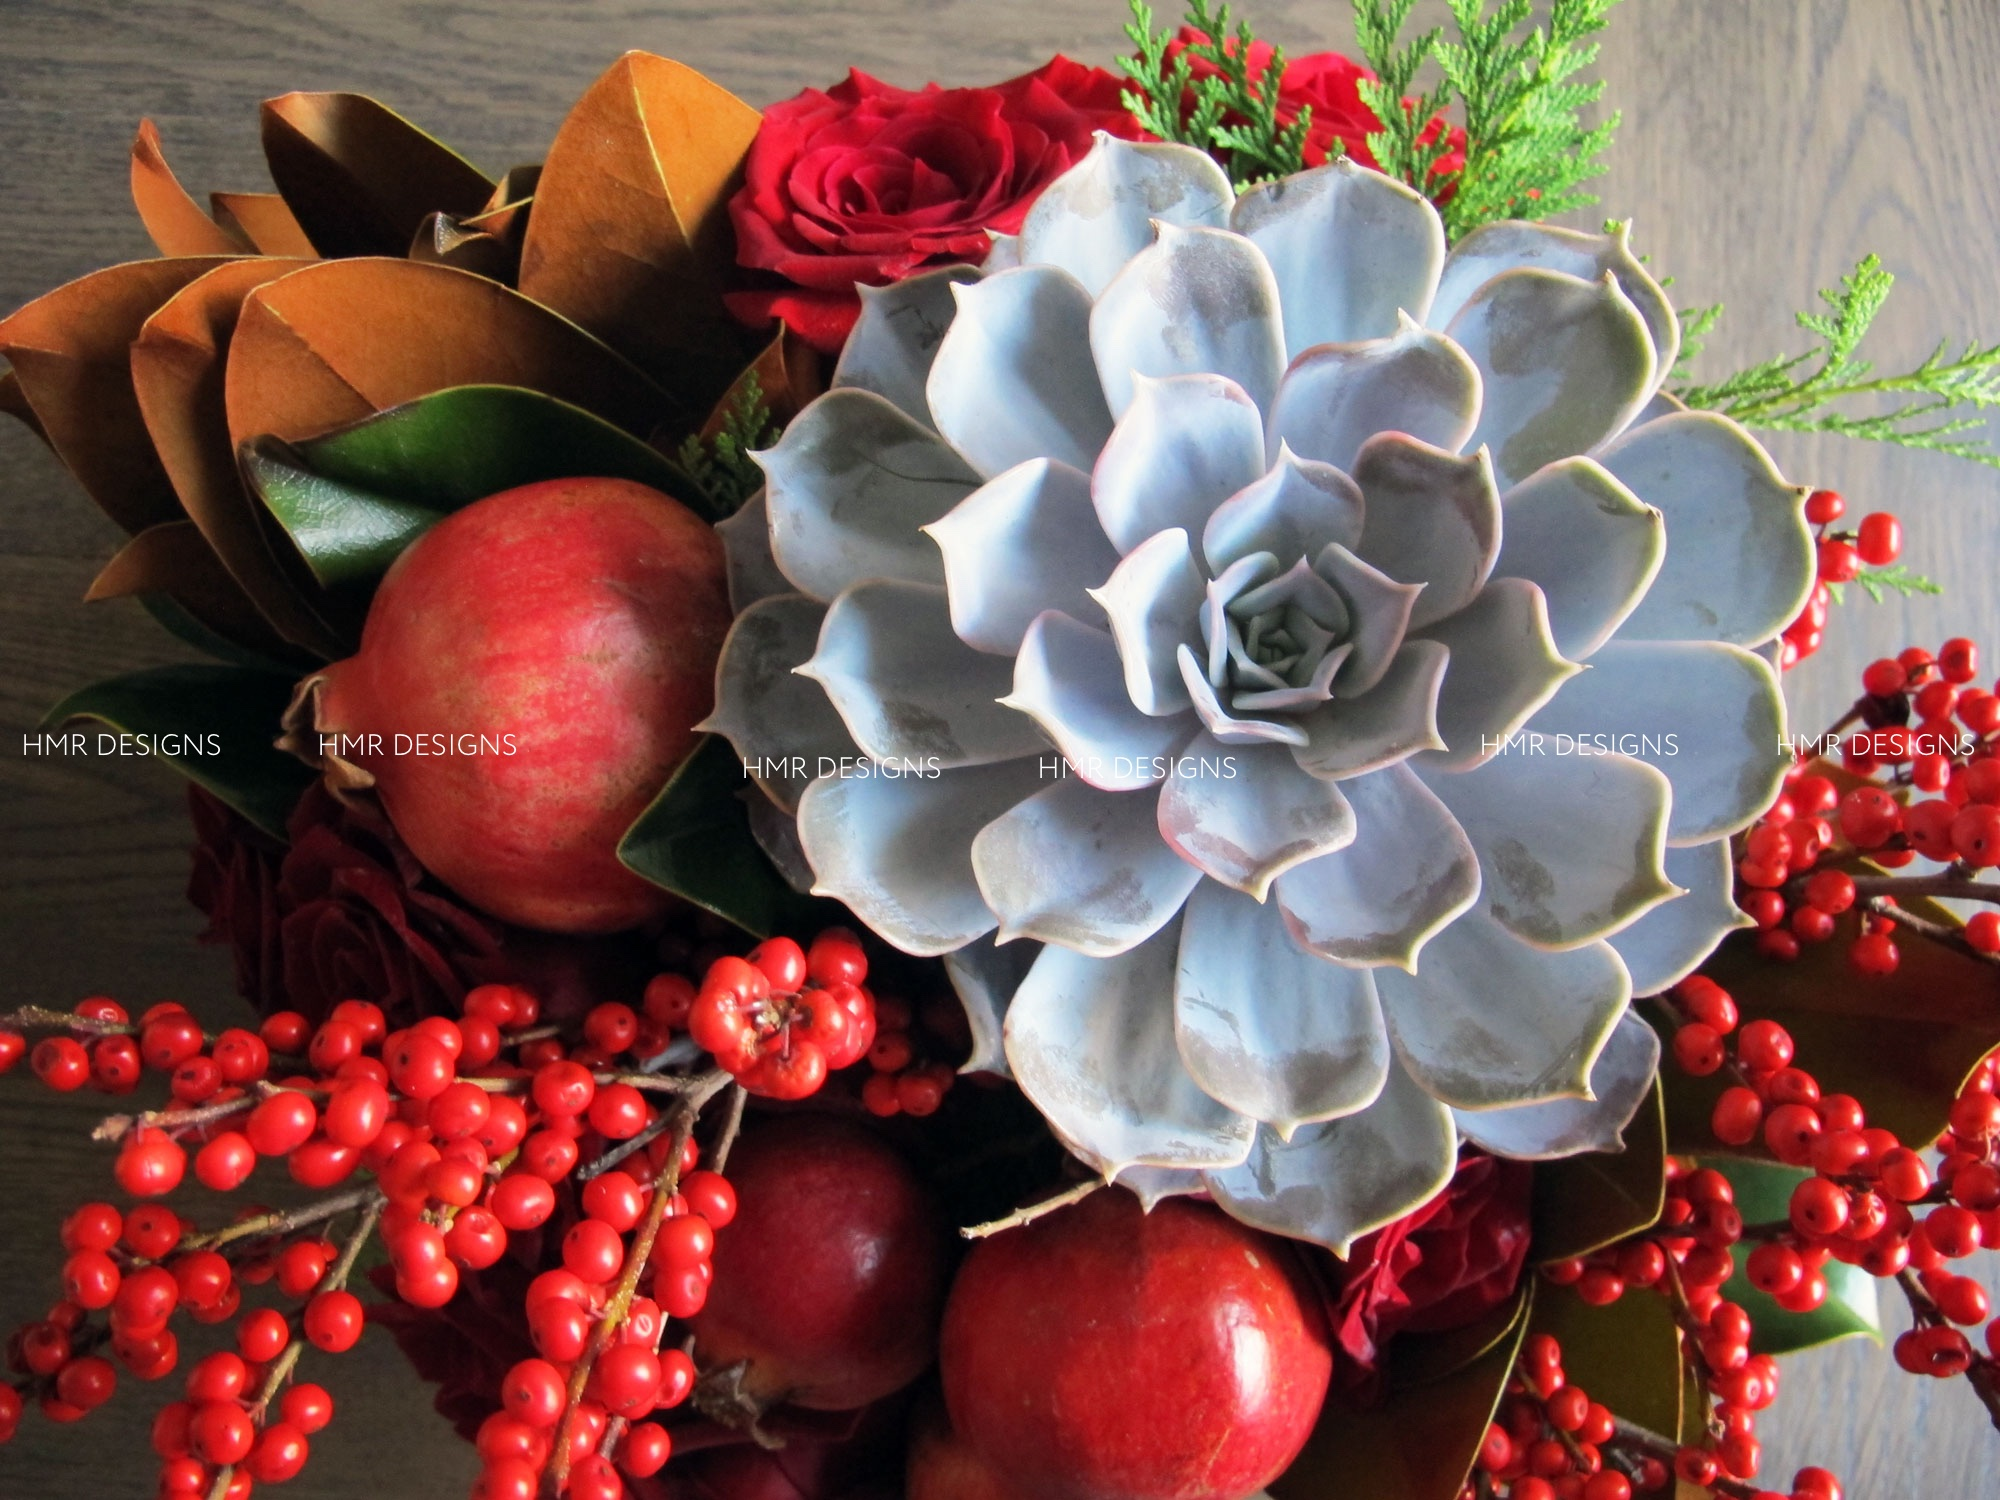 Autumn inspired floral design by HMR Designs